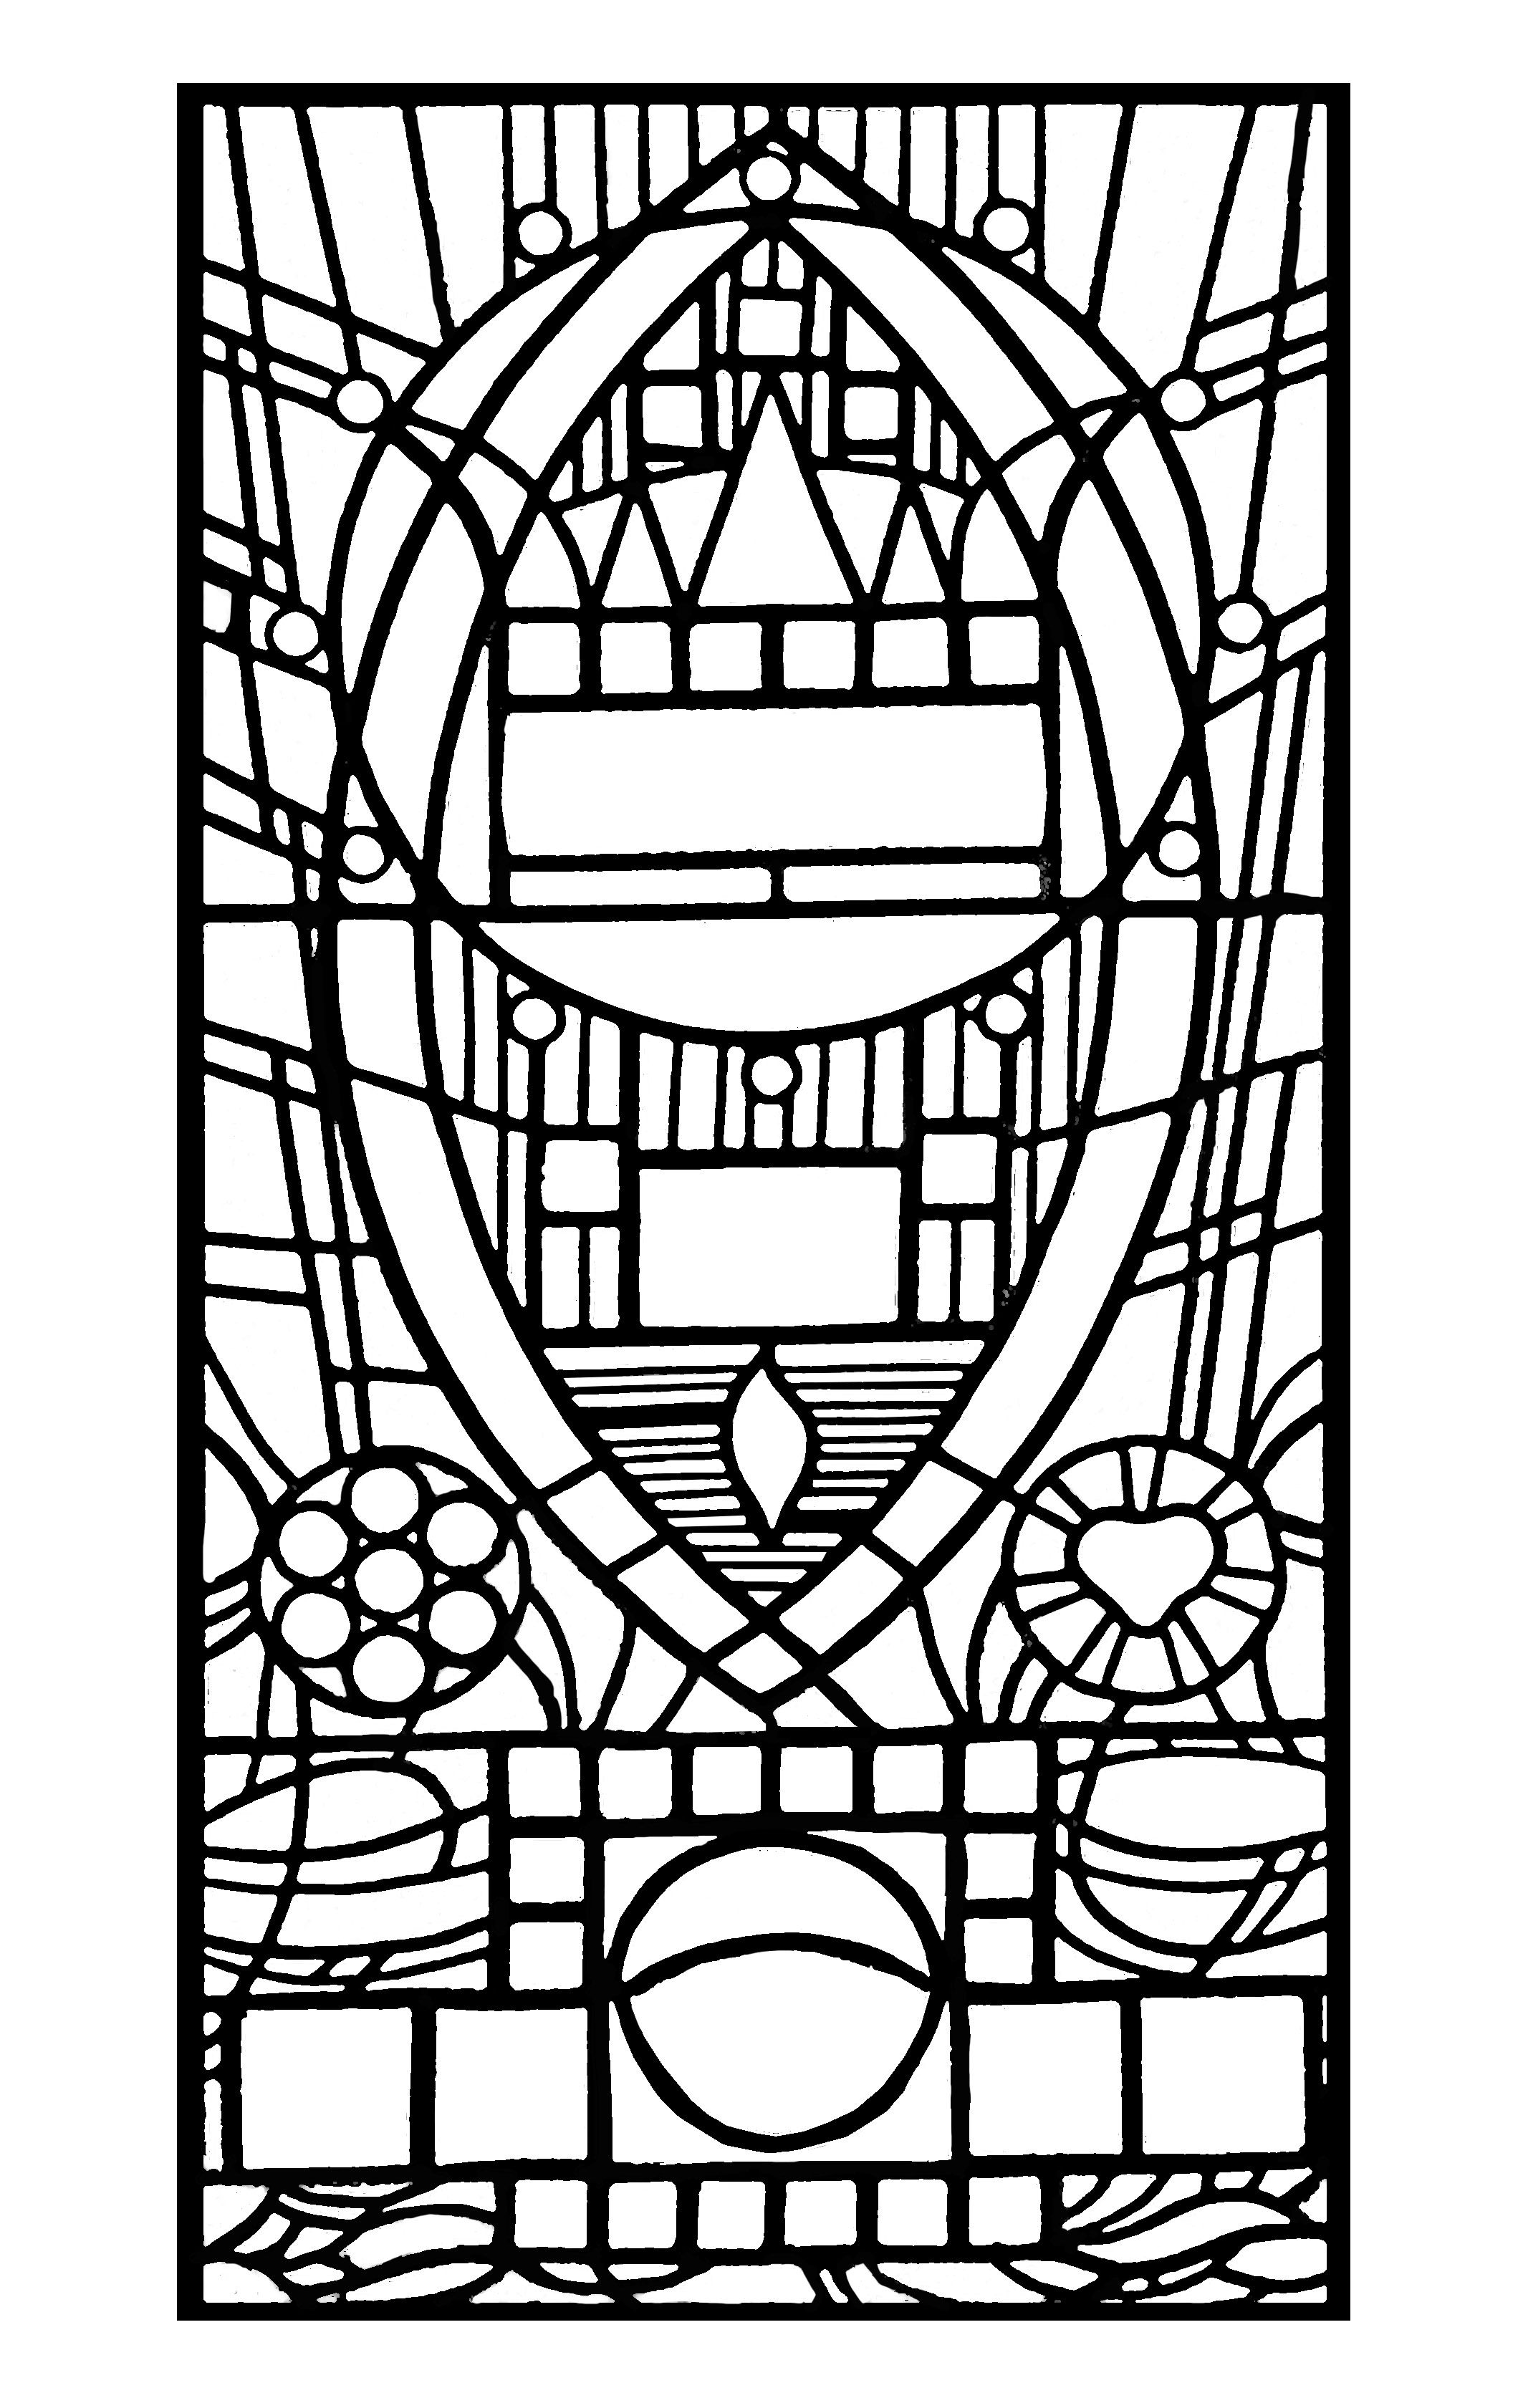 Free coloring page coloringadultstainedglassdel